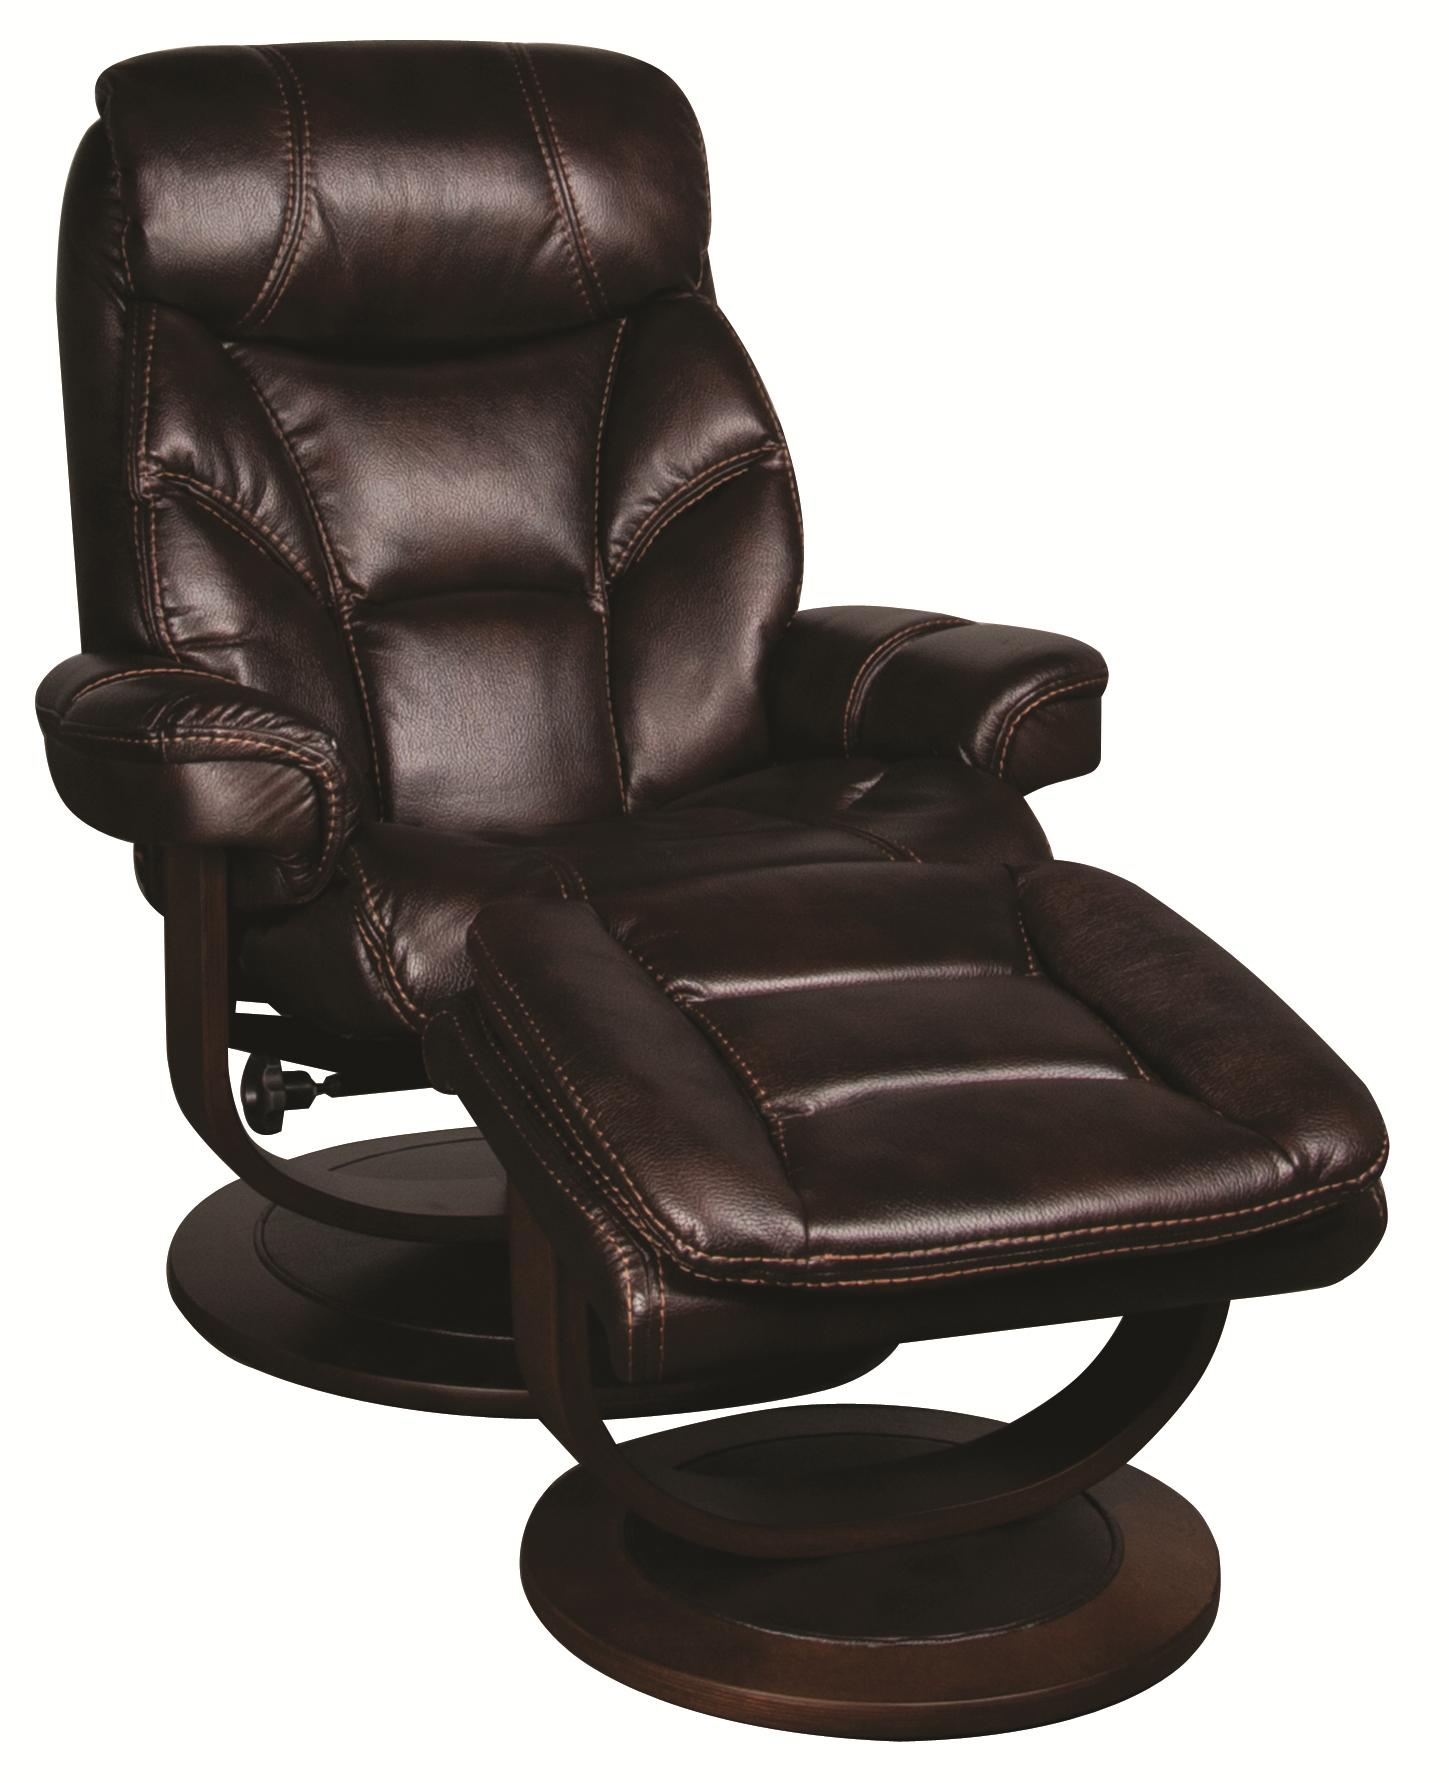 Leather Recliner Chair With Ottoman Saul Saul Swivel Recliner With Ottoman By Morris Home At Morris Home